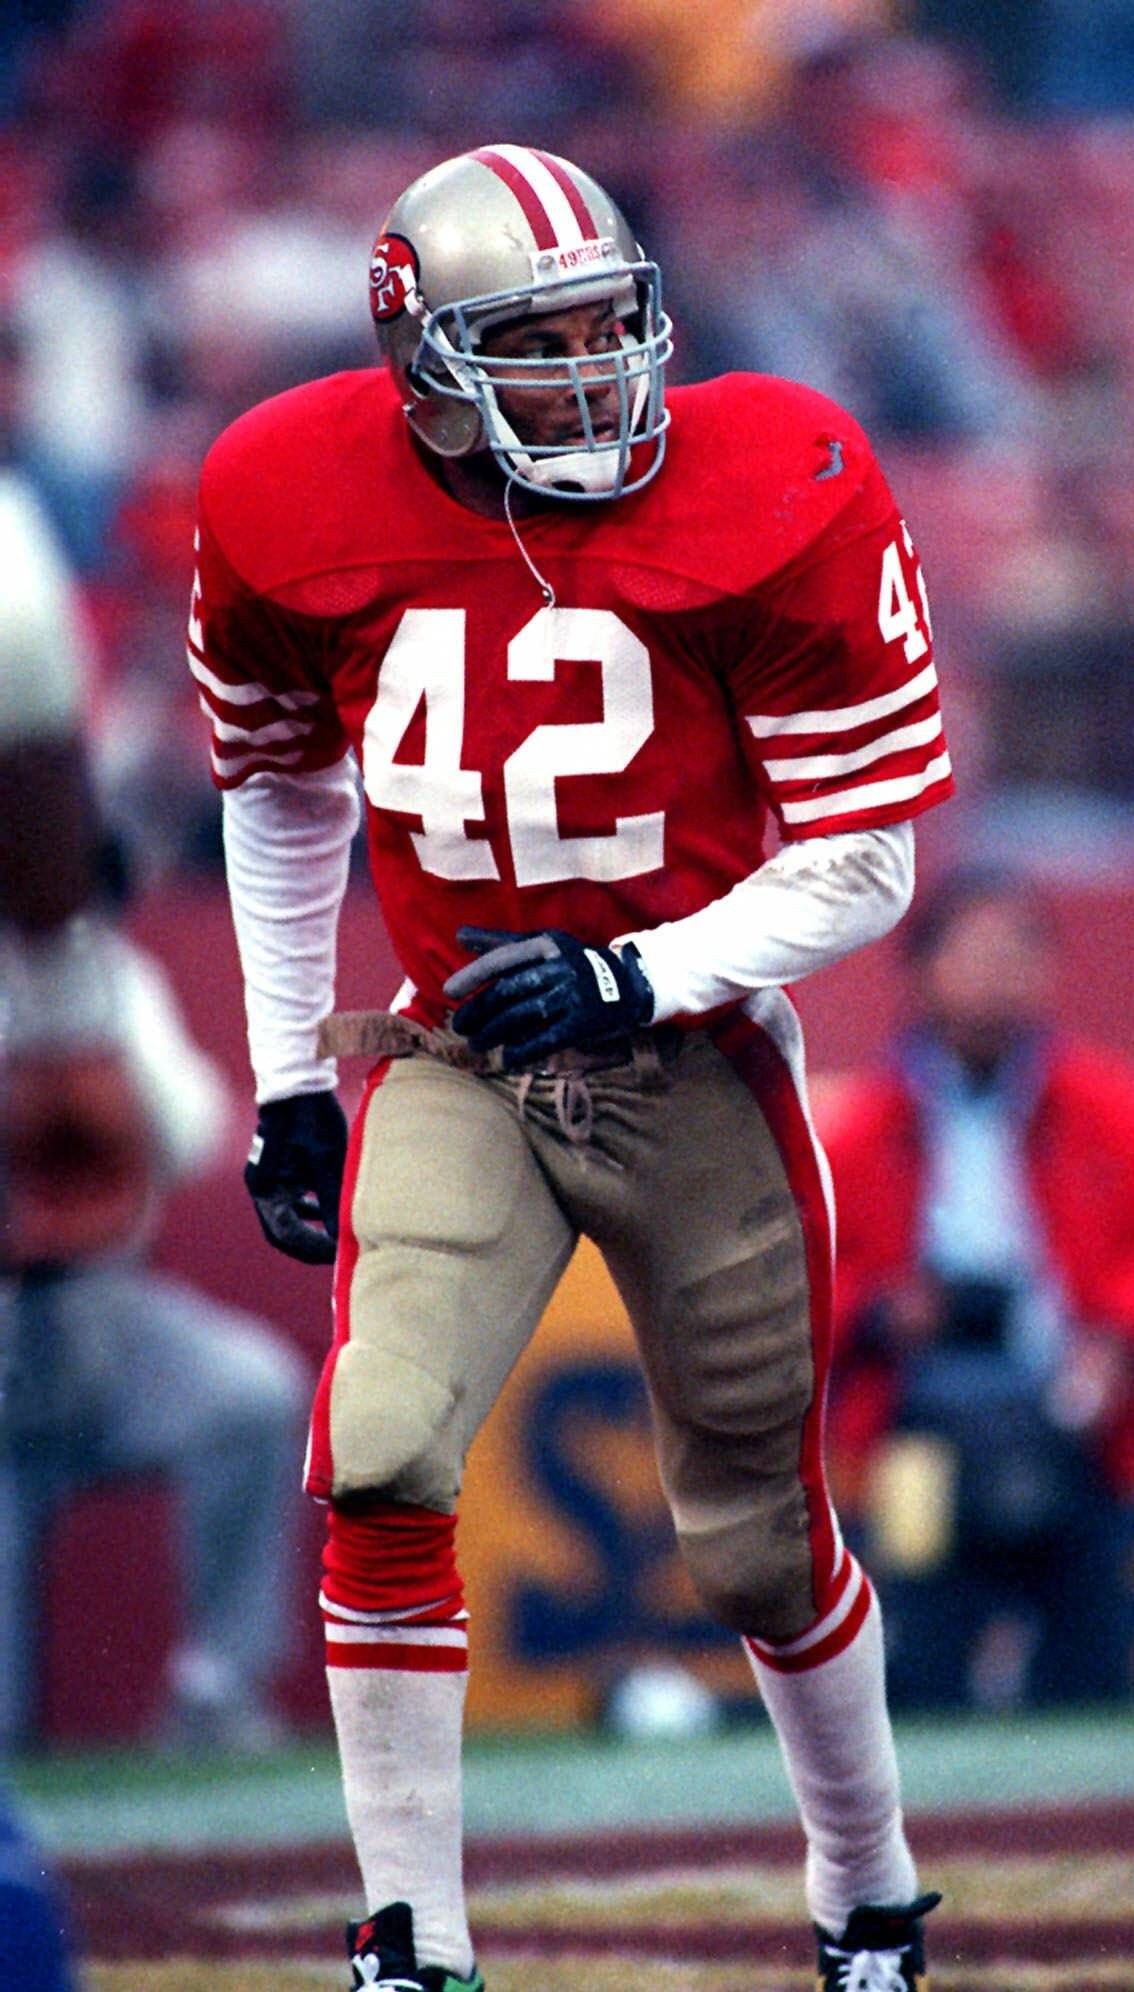 ebeae507d Ronnie Lott 49ers One of the best corners in NFL history